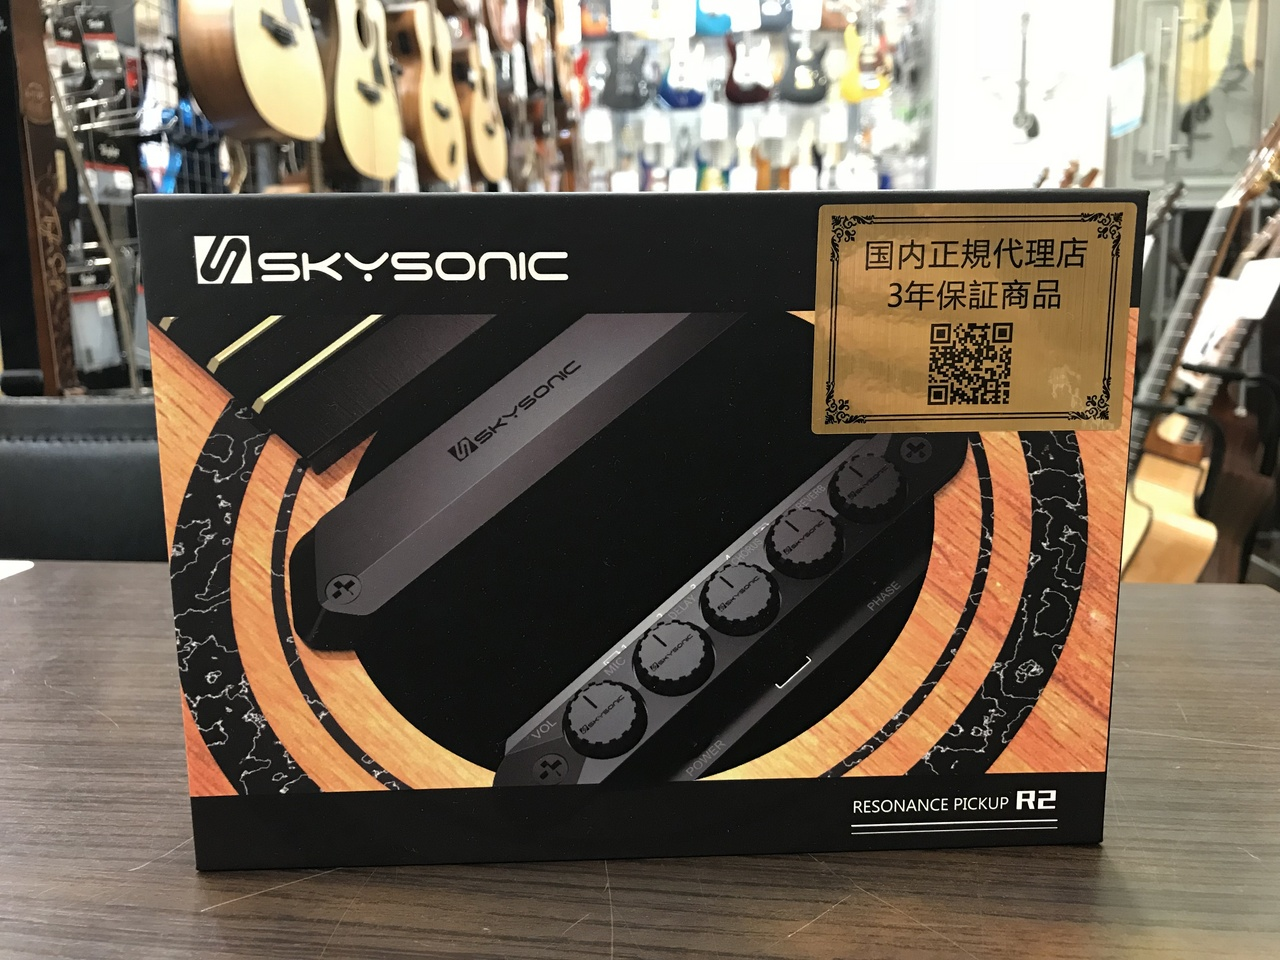 SKYSONIC R2 Resonance Pickup